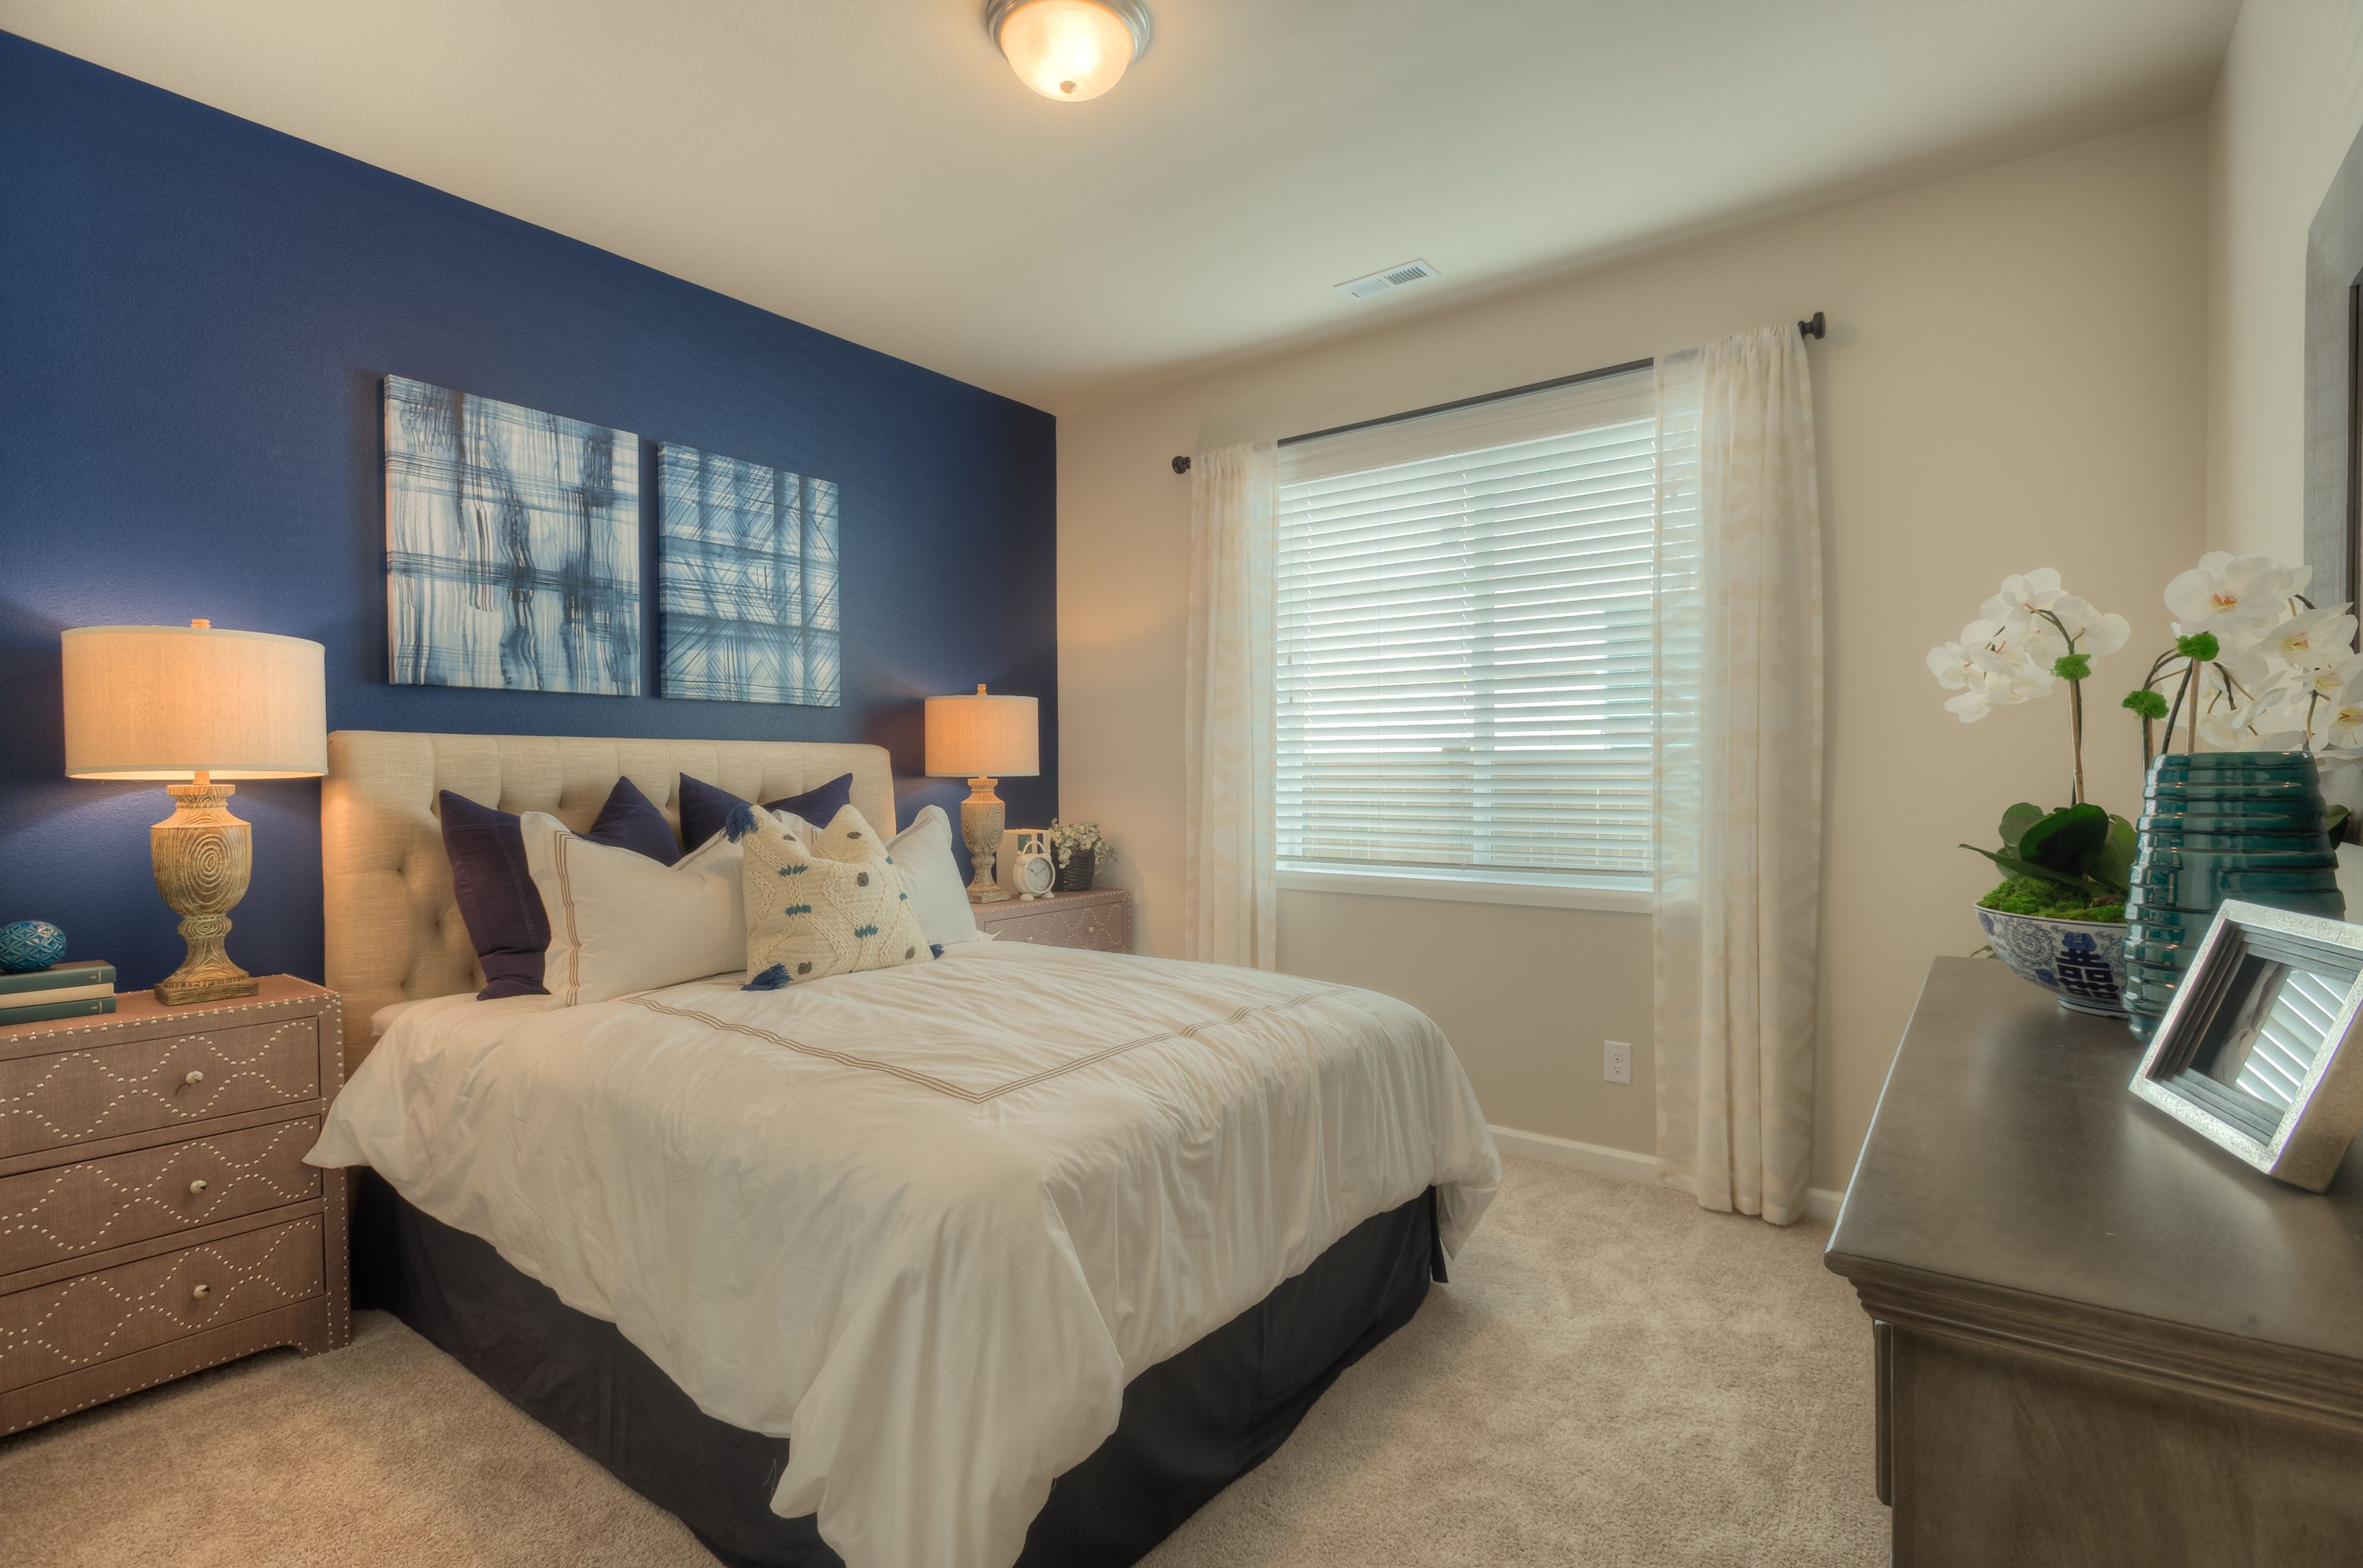 This Accent Wall Is Indigo Batik By Sherwin Williams And Looks Amazing Next To The Creamy Accessible Beige Beige Room Beige Bedroom Paint Colors Beige Bedroom